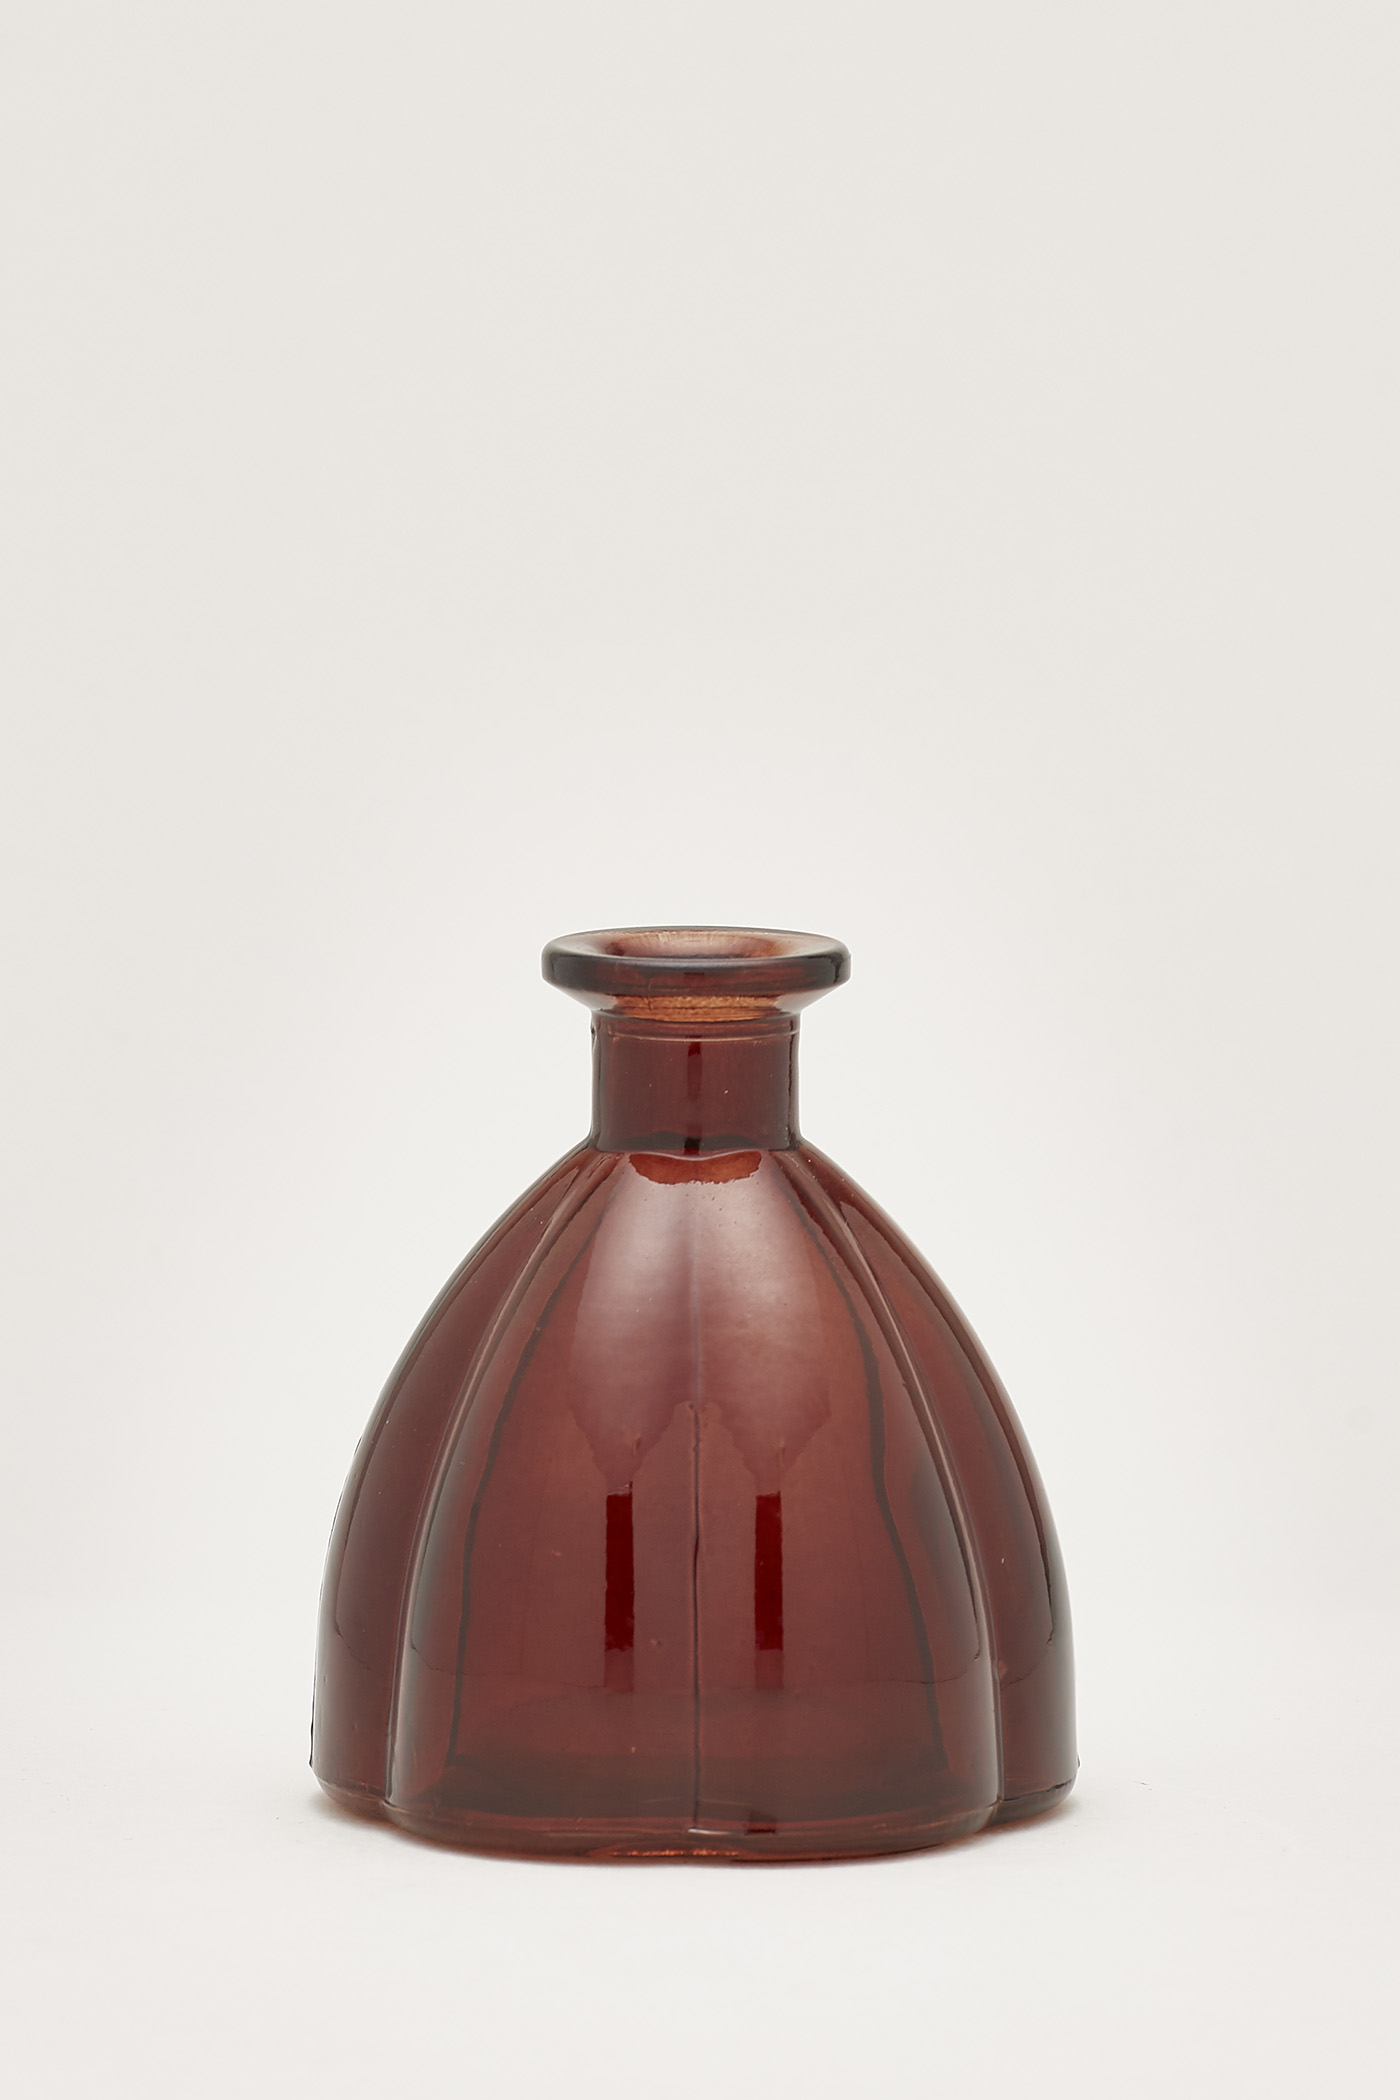 Linnea Scallop Bottle-Neck Vase